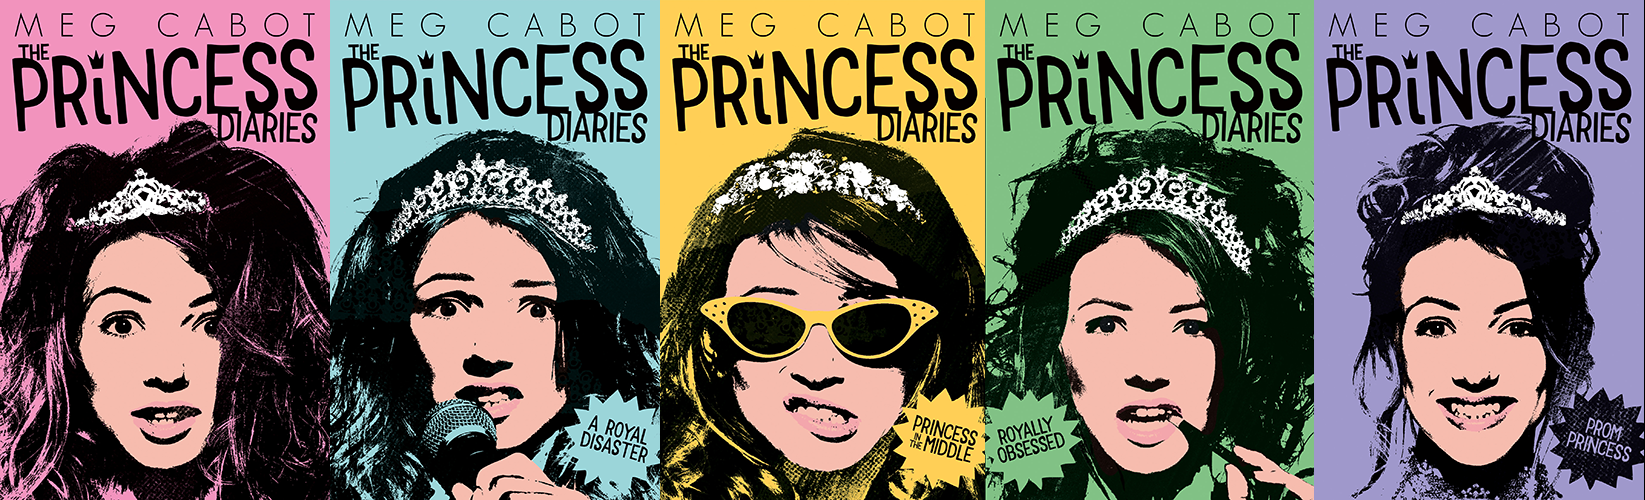 princess diaries essay Mia continues her 'princess lessons'- riding horses side-saddle, archery, and  other  (2004): chris pine is the superior chris and always will be in this essay.